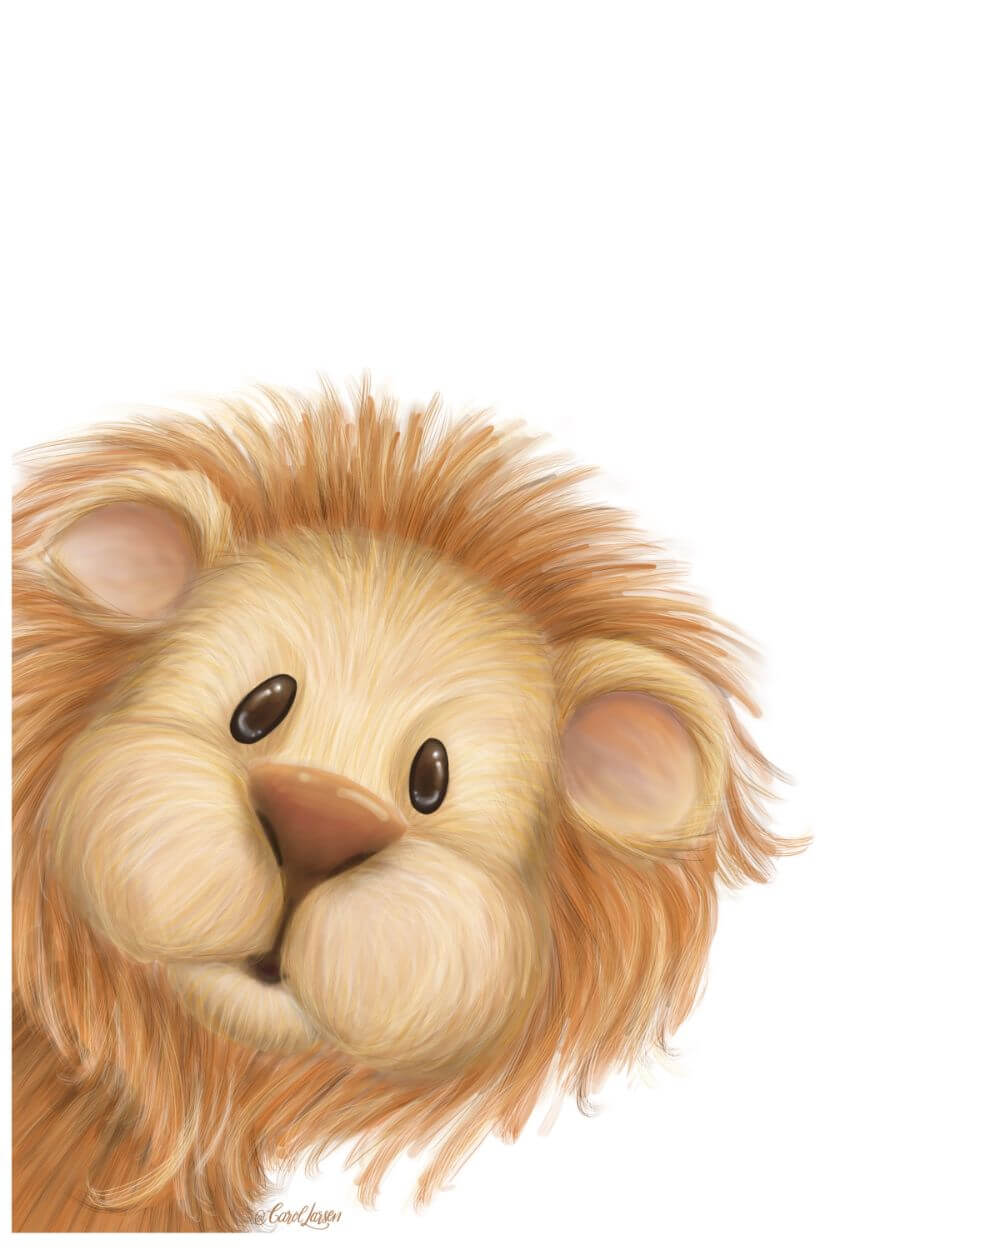 Name-Lion on White Background_Tag-Animals_Collection-All Seasons.